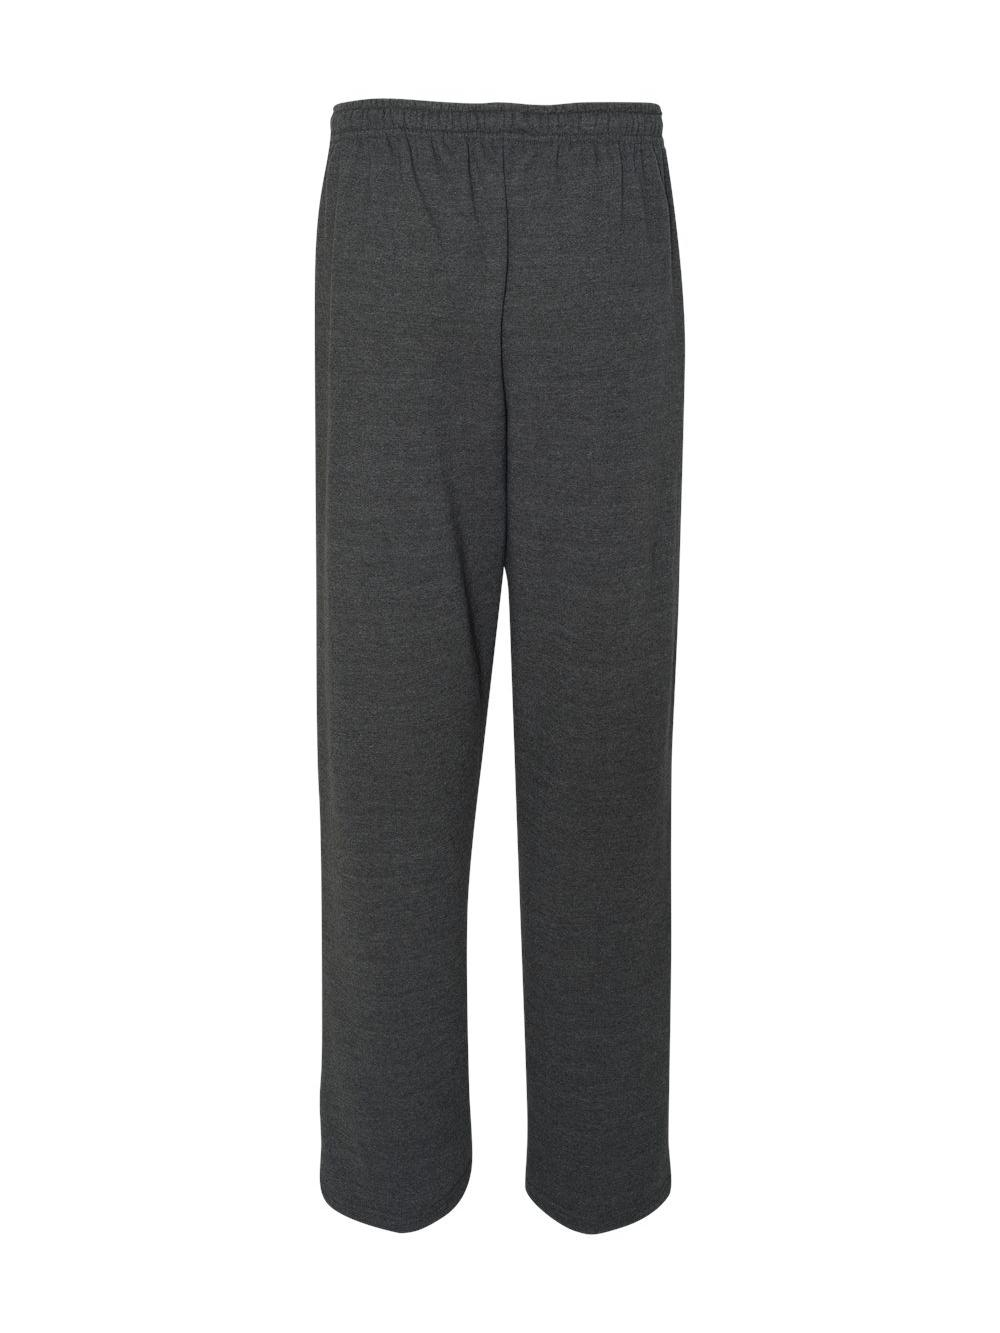 Gildan-Heavy-Blend-Open-Bottom-Sweatpants-18400 thumbnail 13